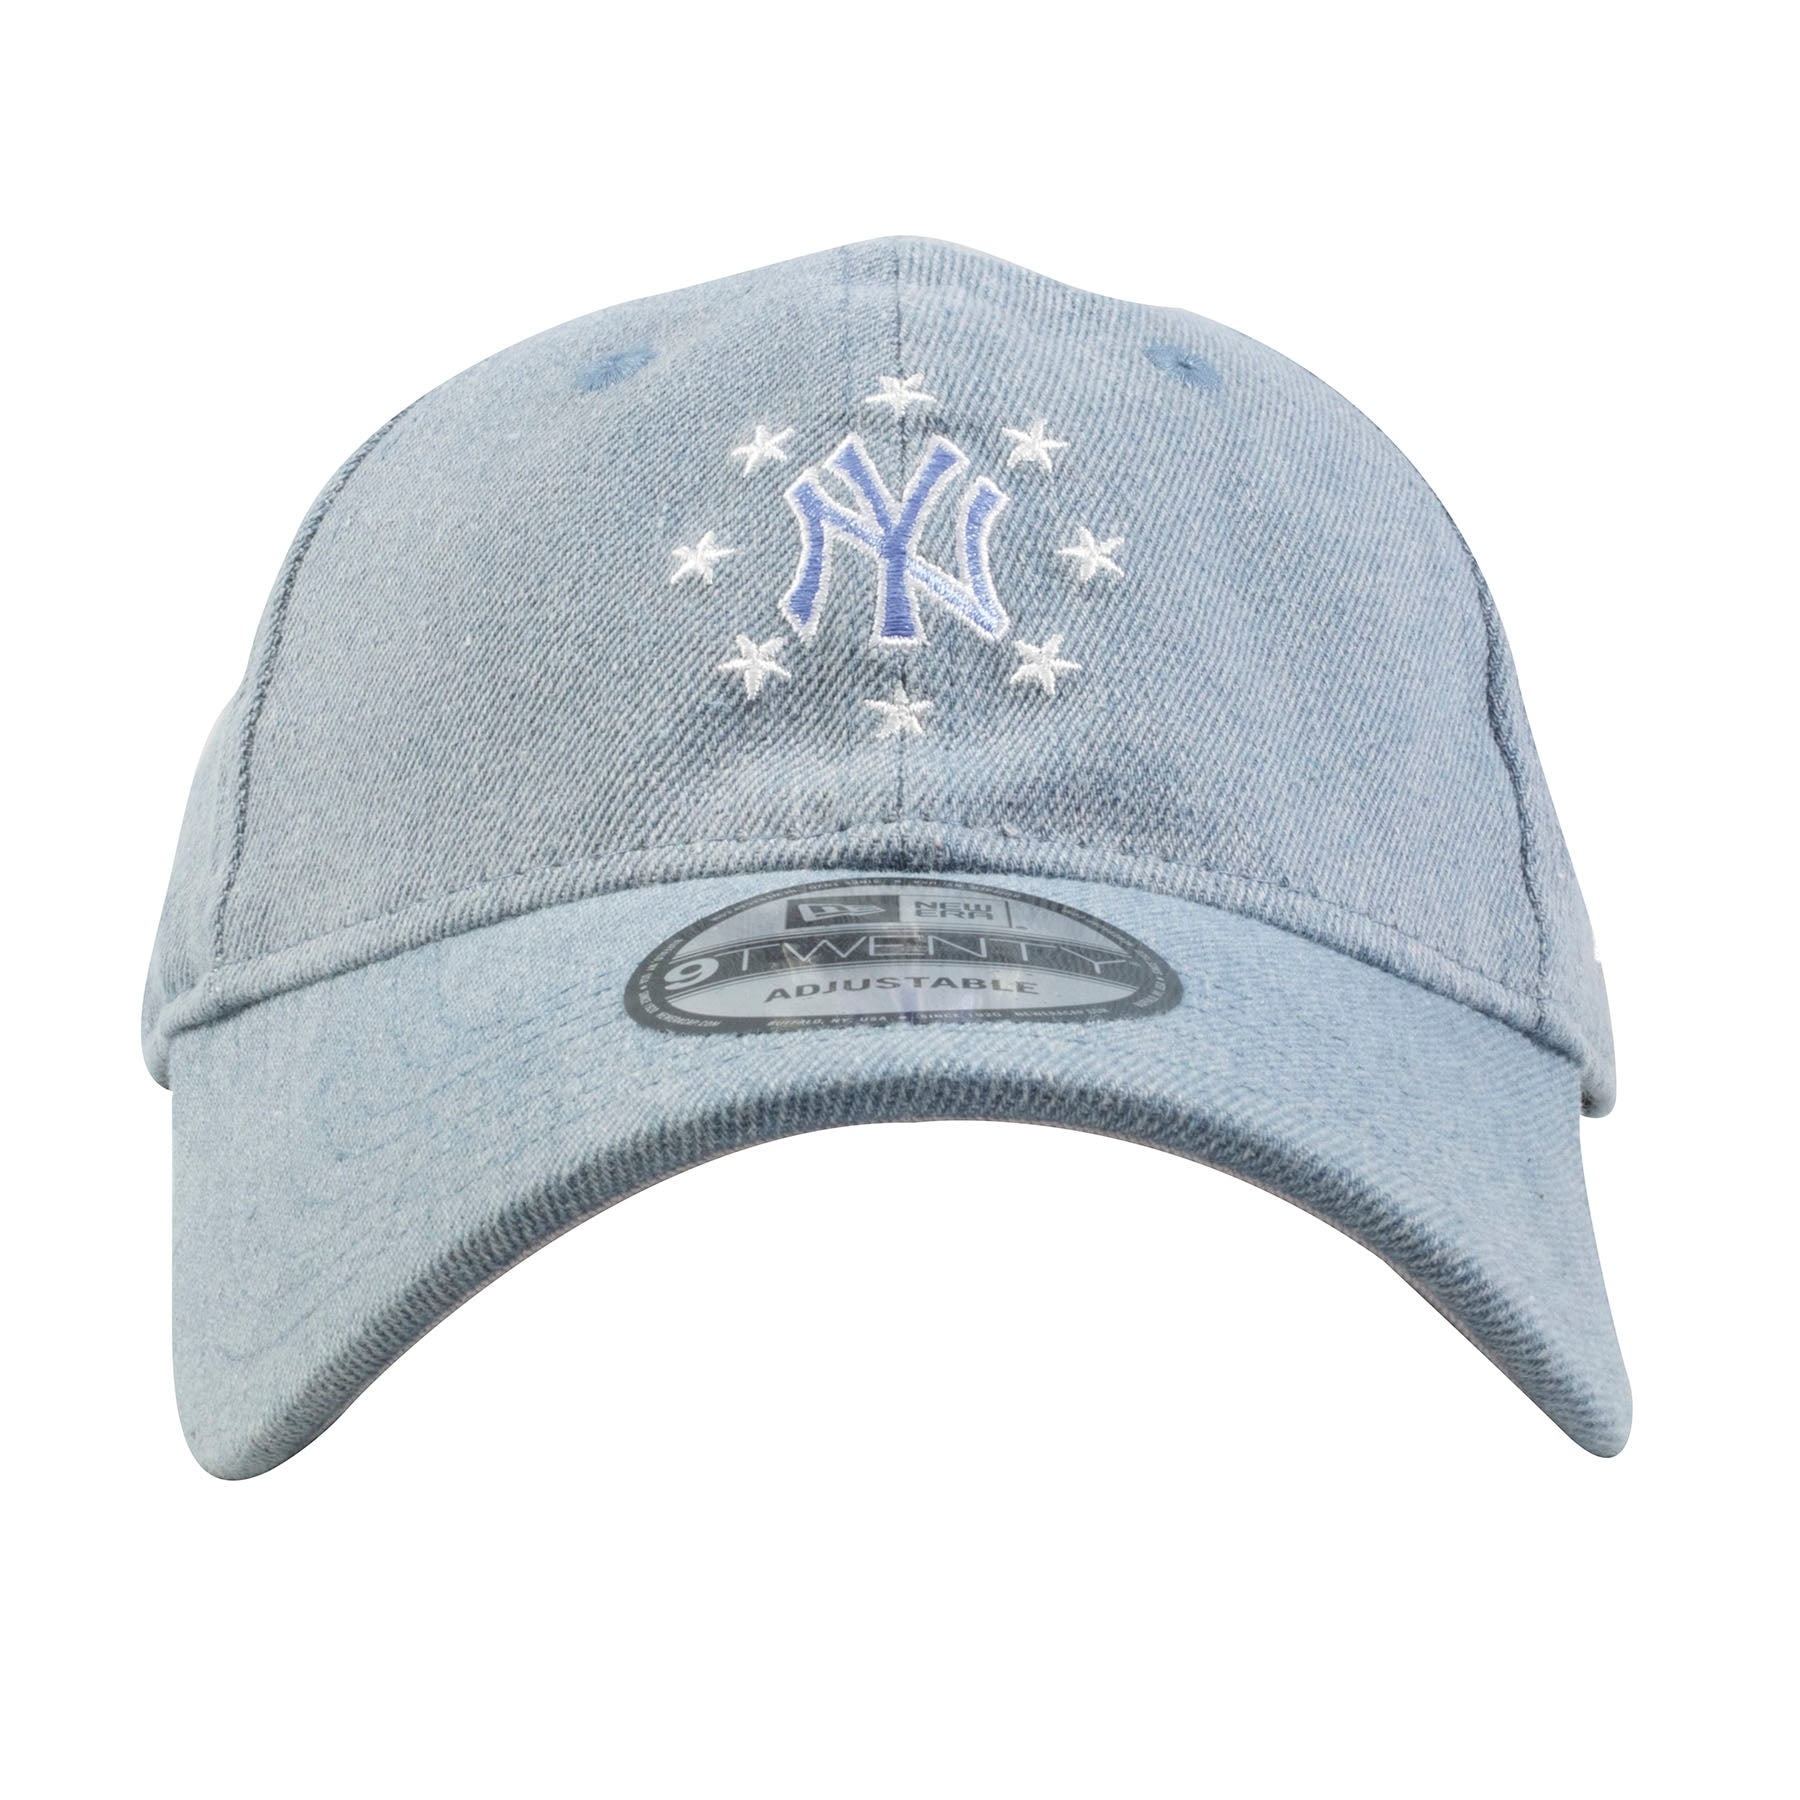 Embroidered on the front of the light denim New York Yankees dad hat is the  New 776c75f2ac7